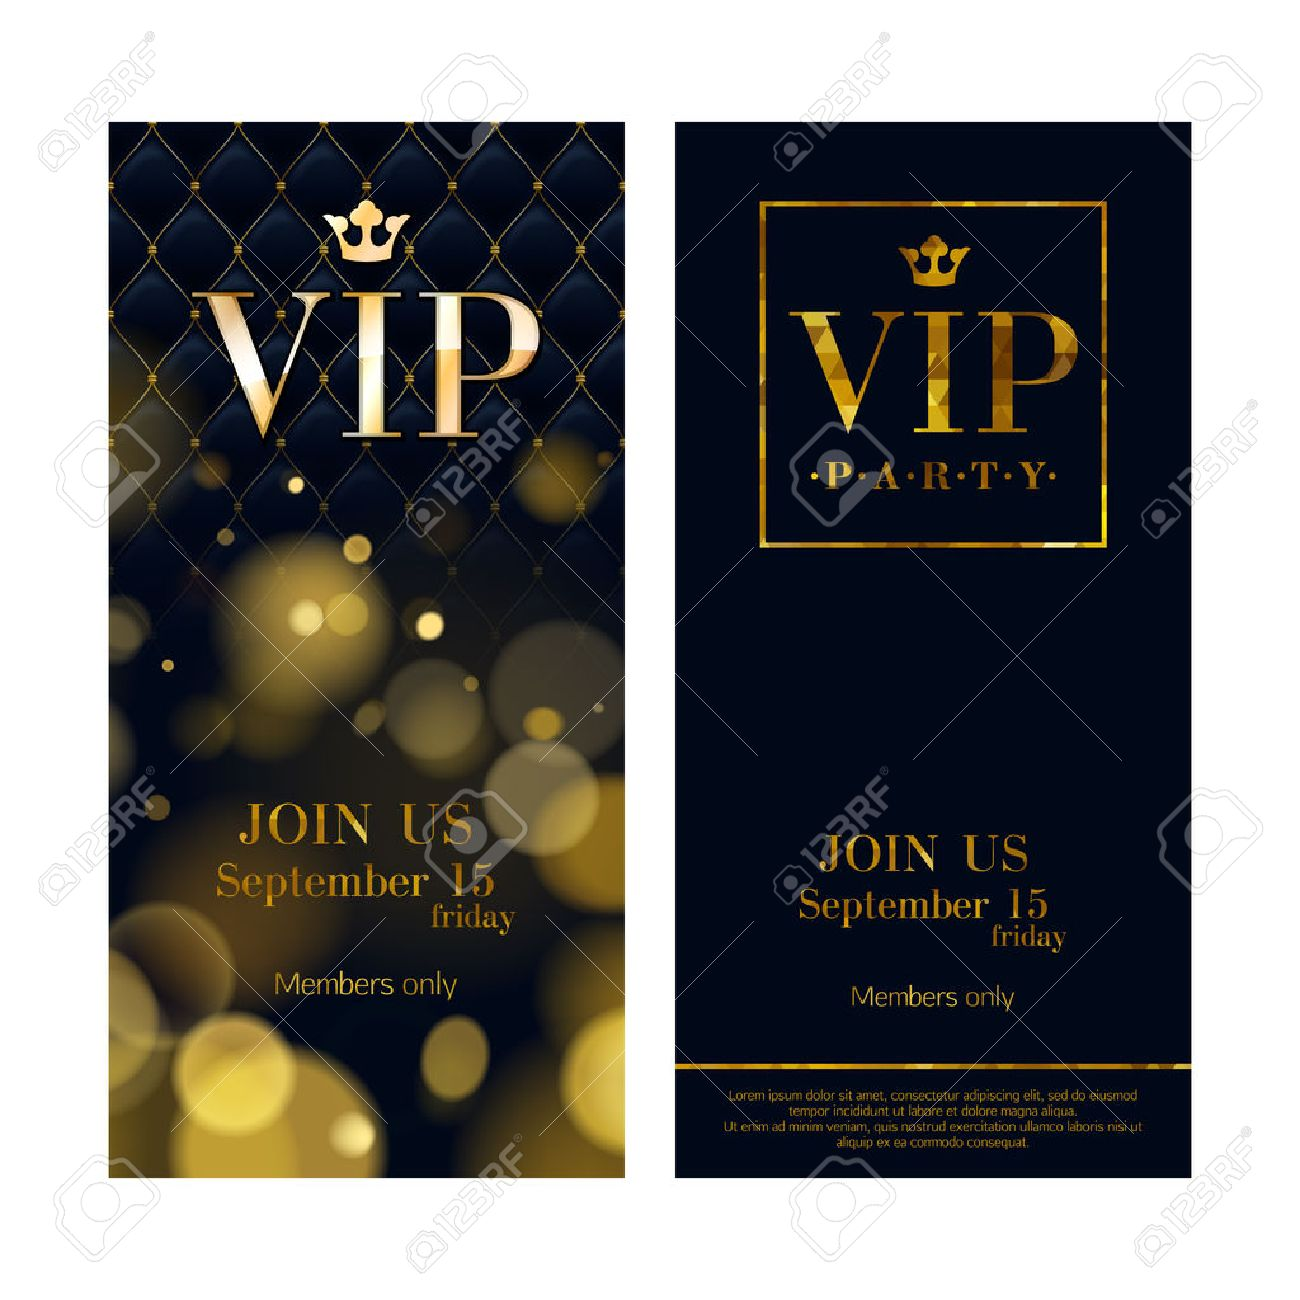 VIP Party Premium Invitation Cards Posters Flyers. Black And ...